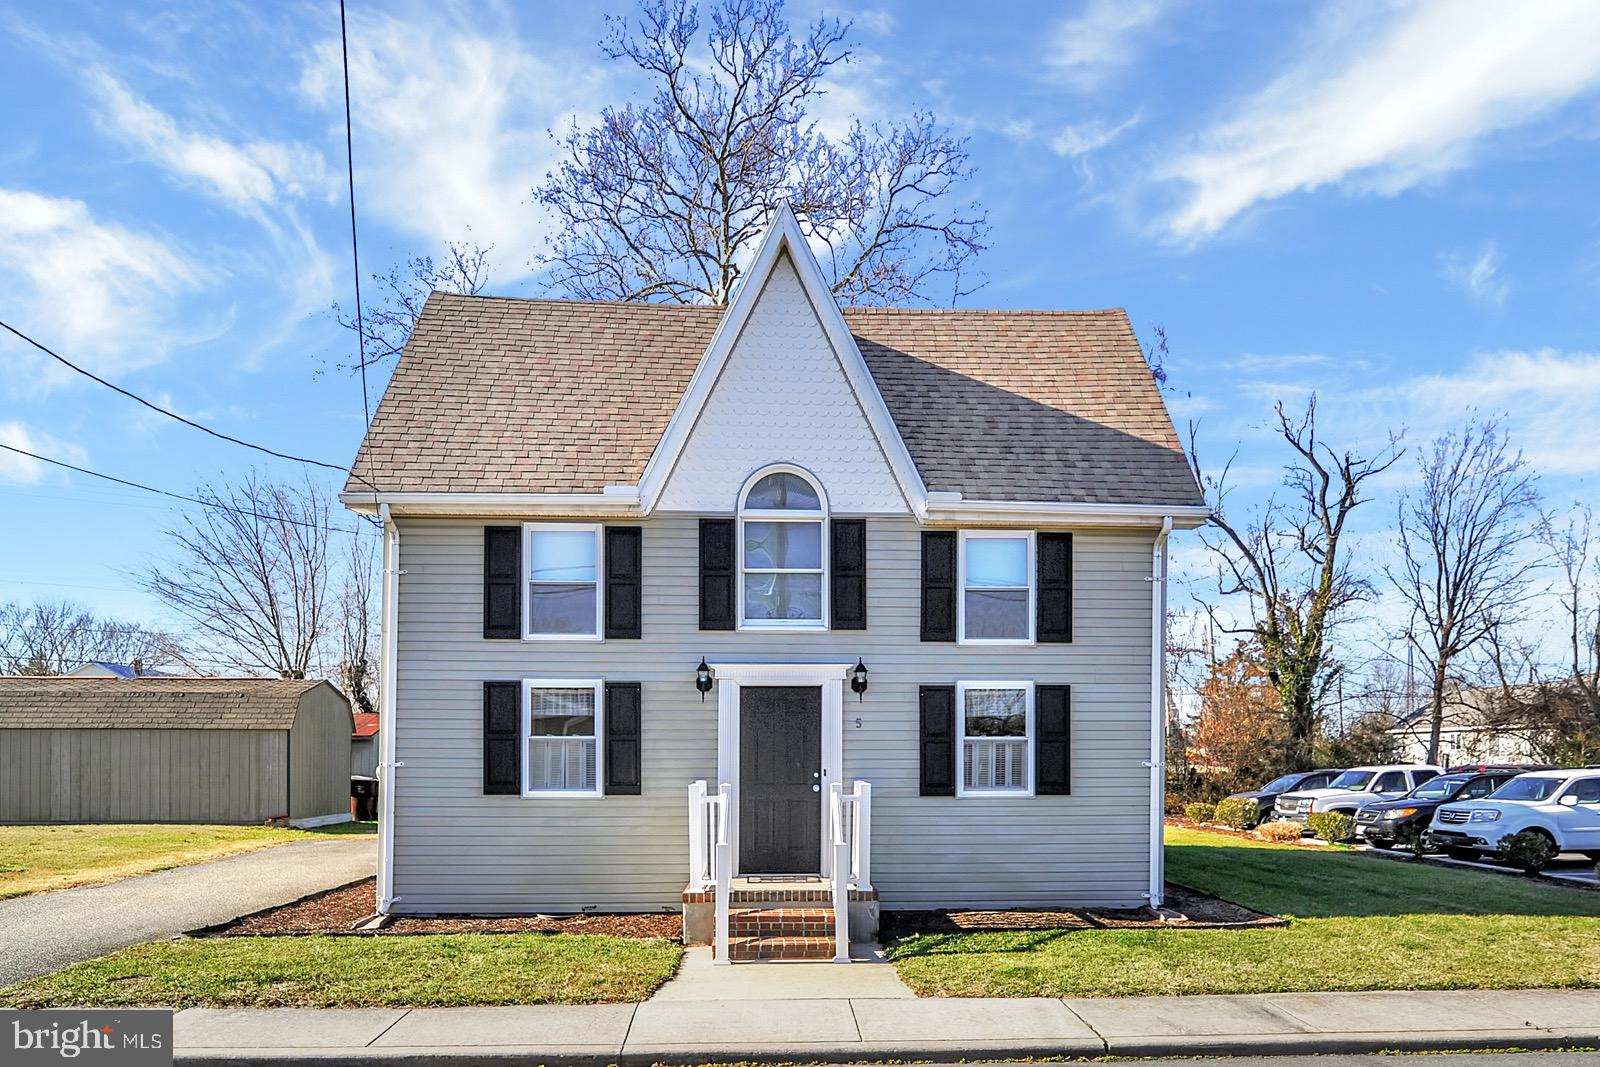 This freshly updated home is the definition of charming! Found in the adorable town of Frankford, th